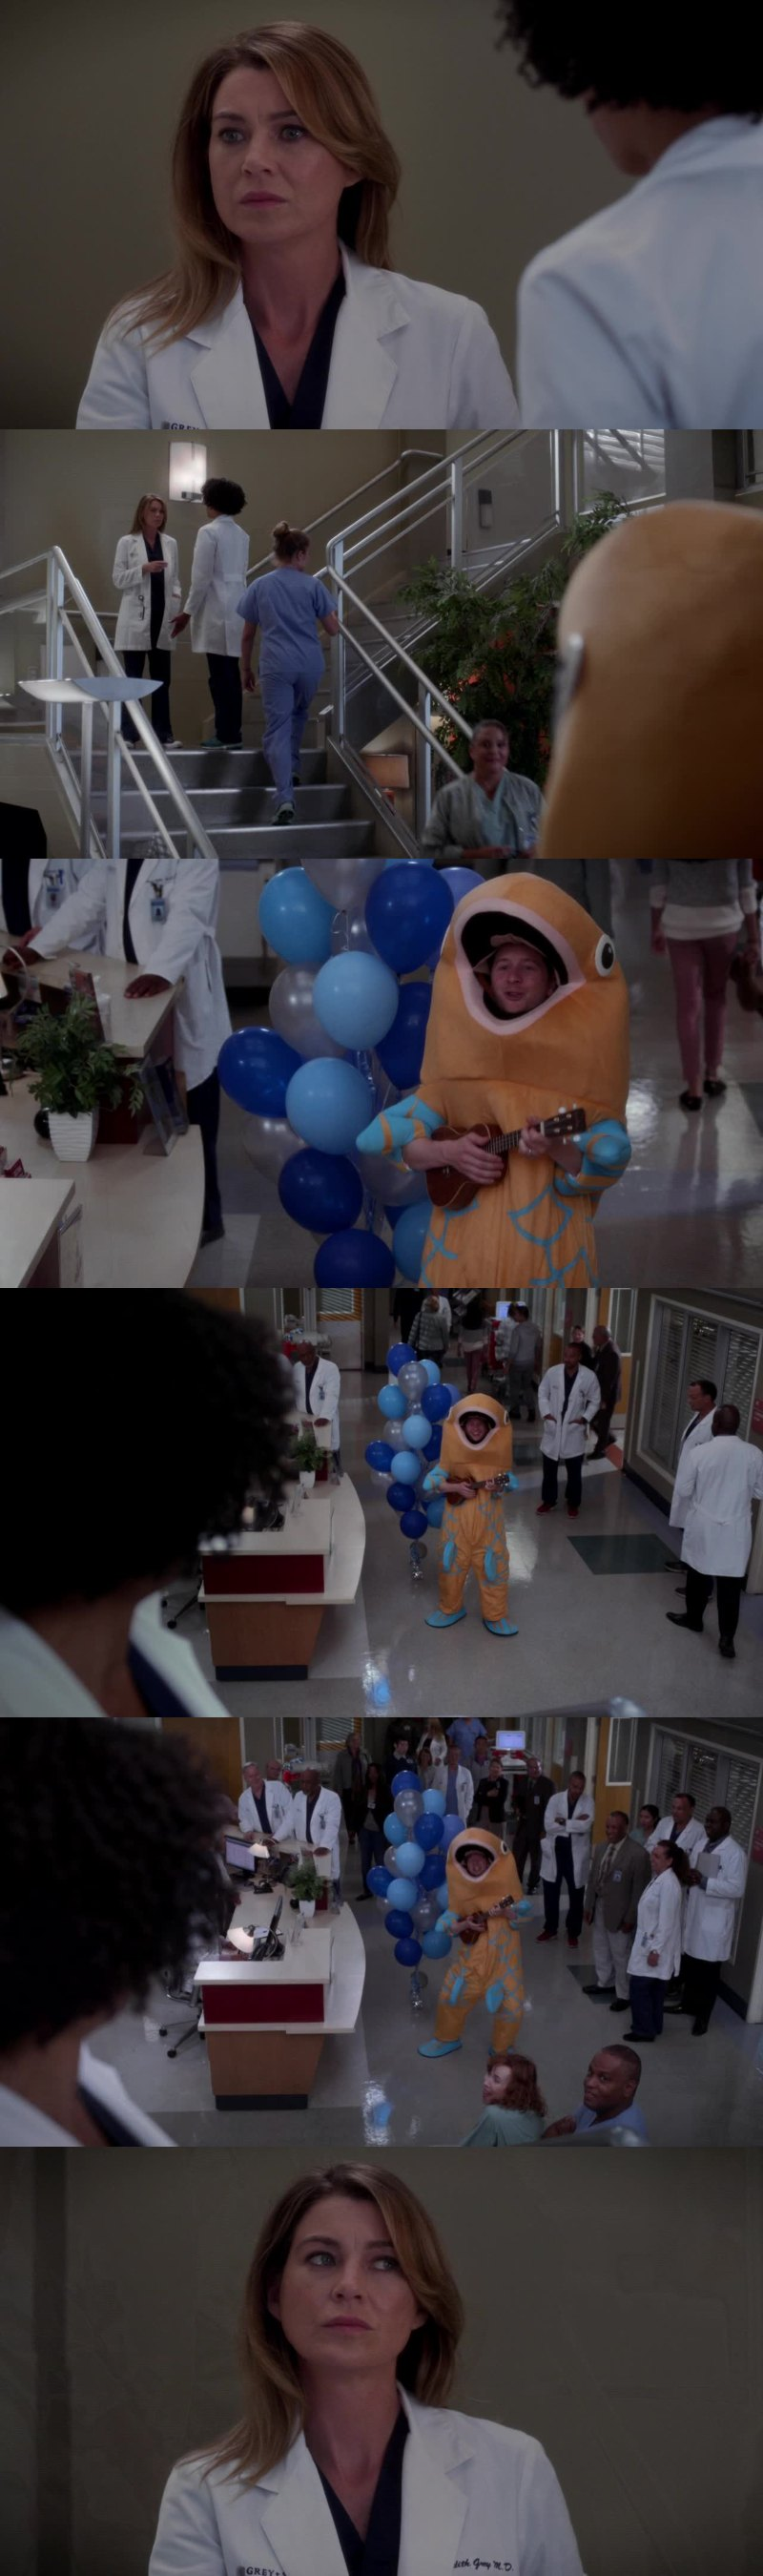 Meredith's reaction is so precious 😂😂